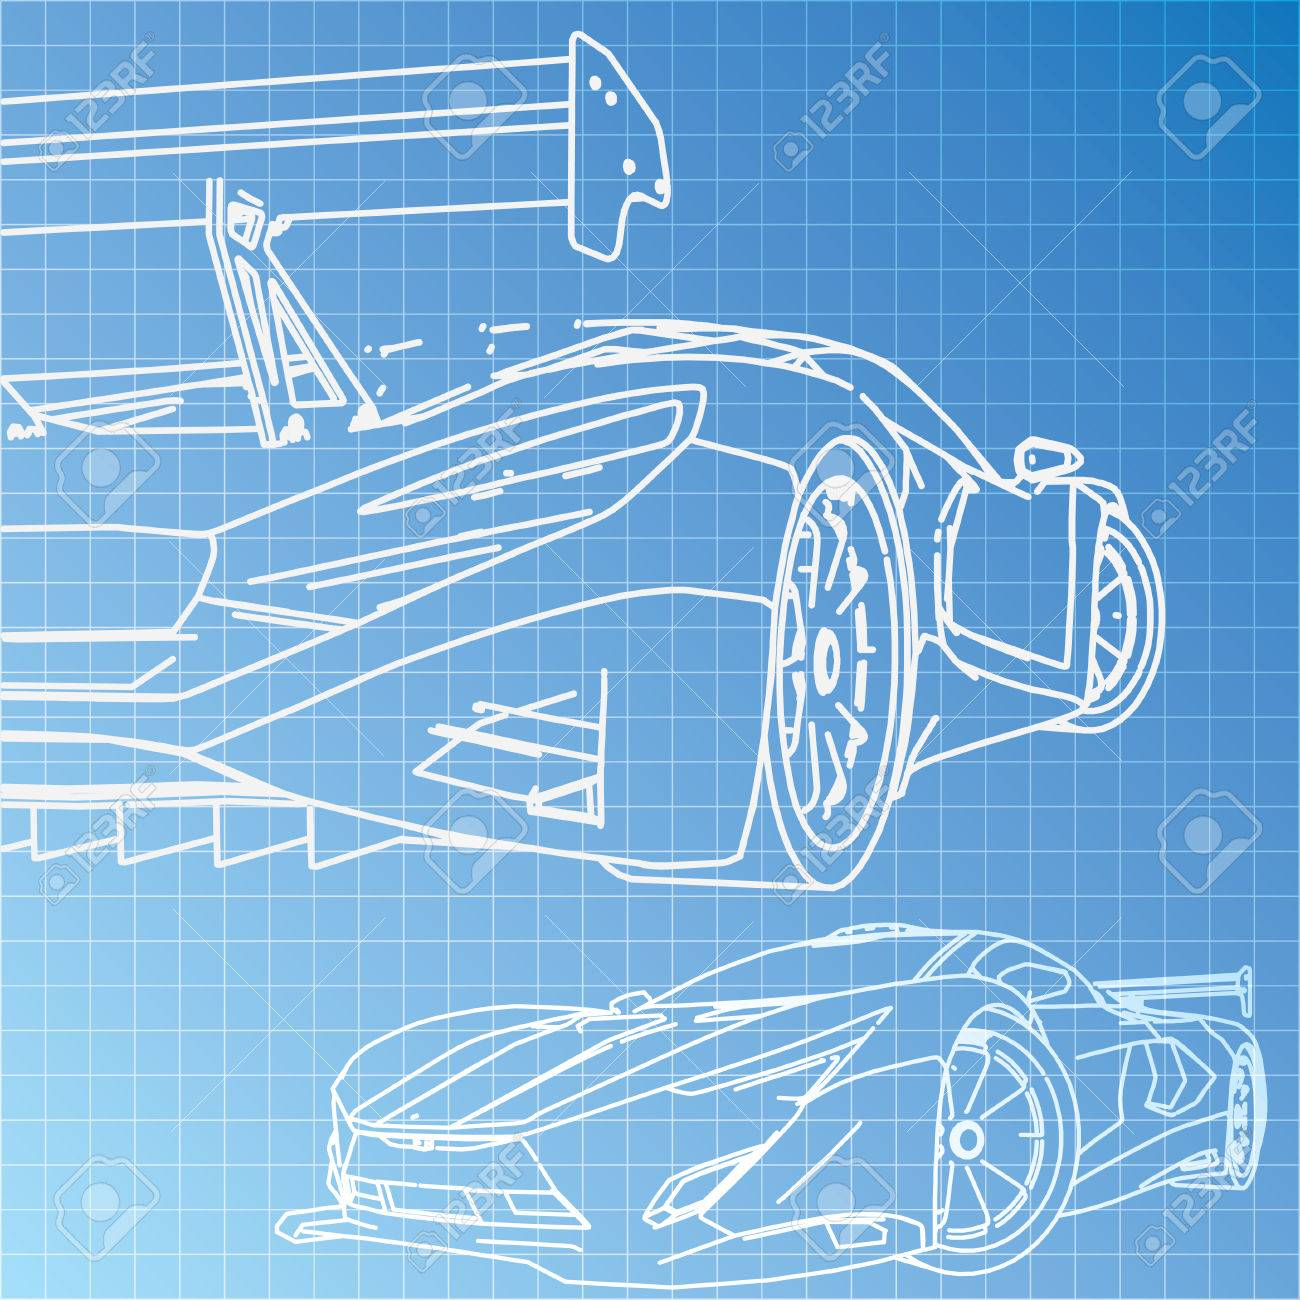 Sports car sketch blueprint royalty free cliparts vectors and sports car sketch blueprint stock vector 29228925 malvernweather Gallery